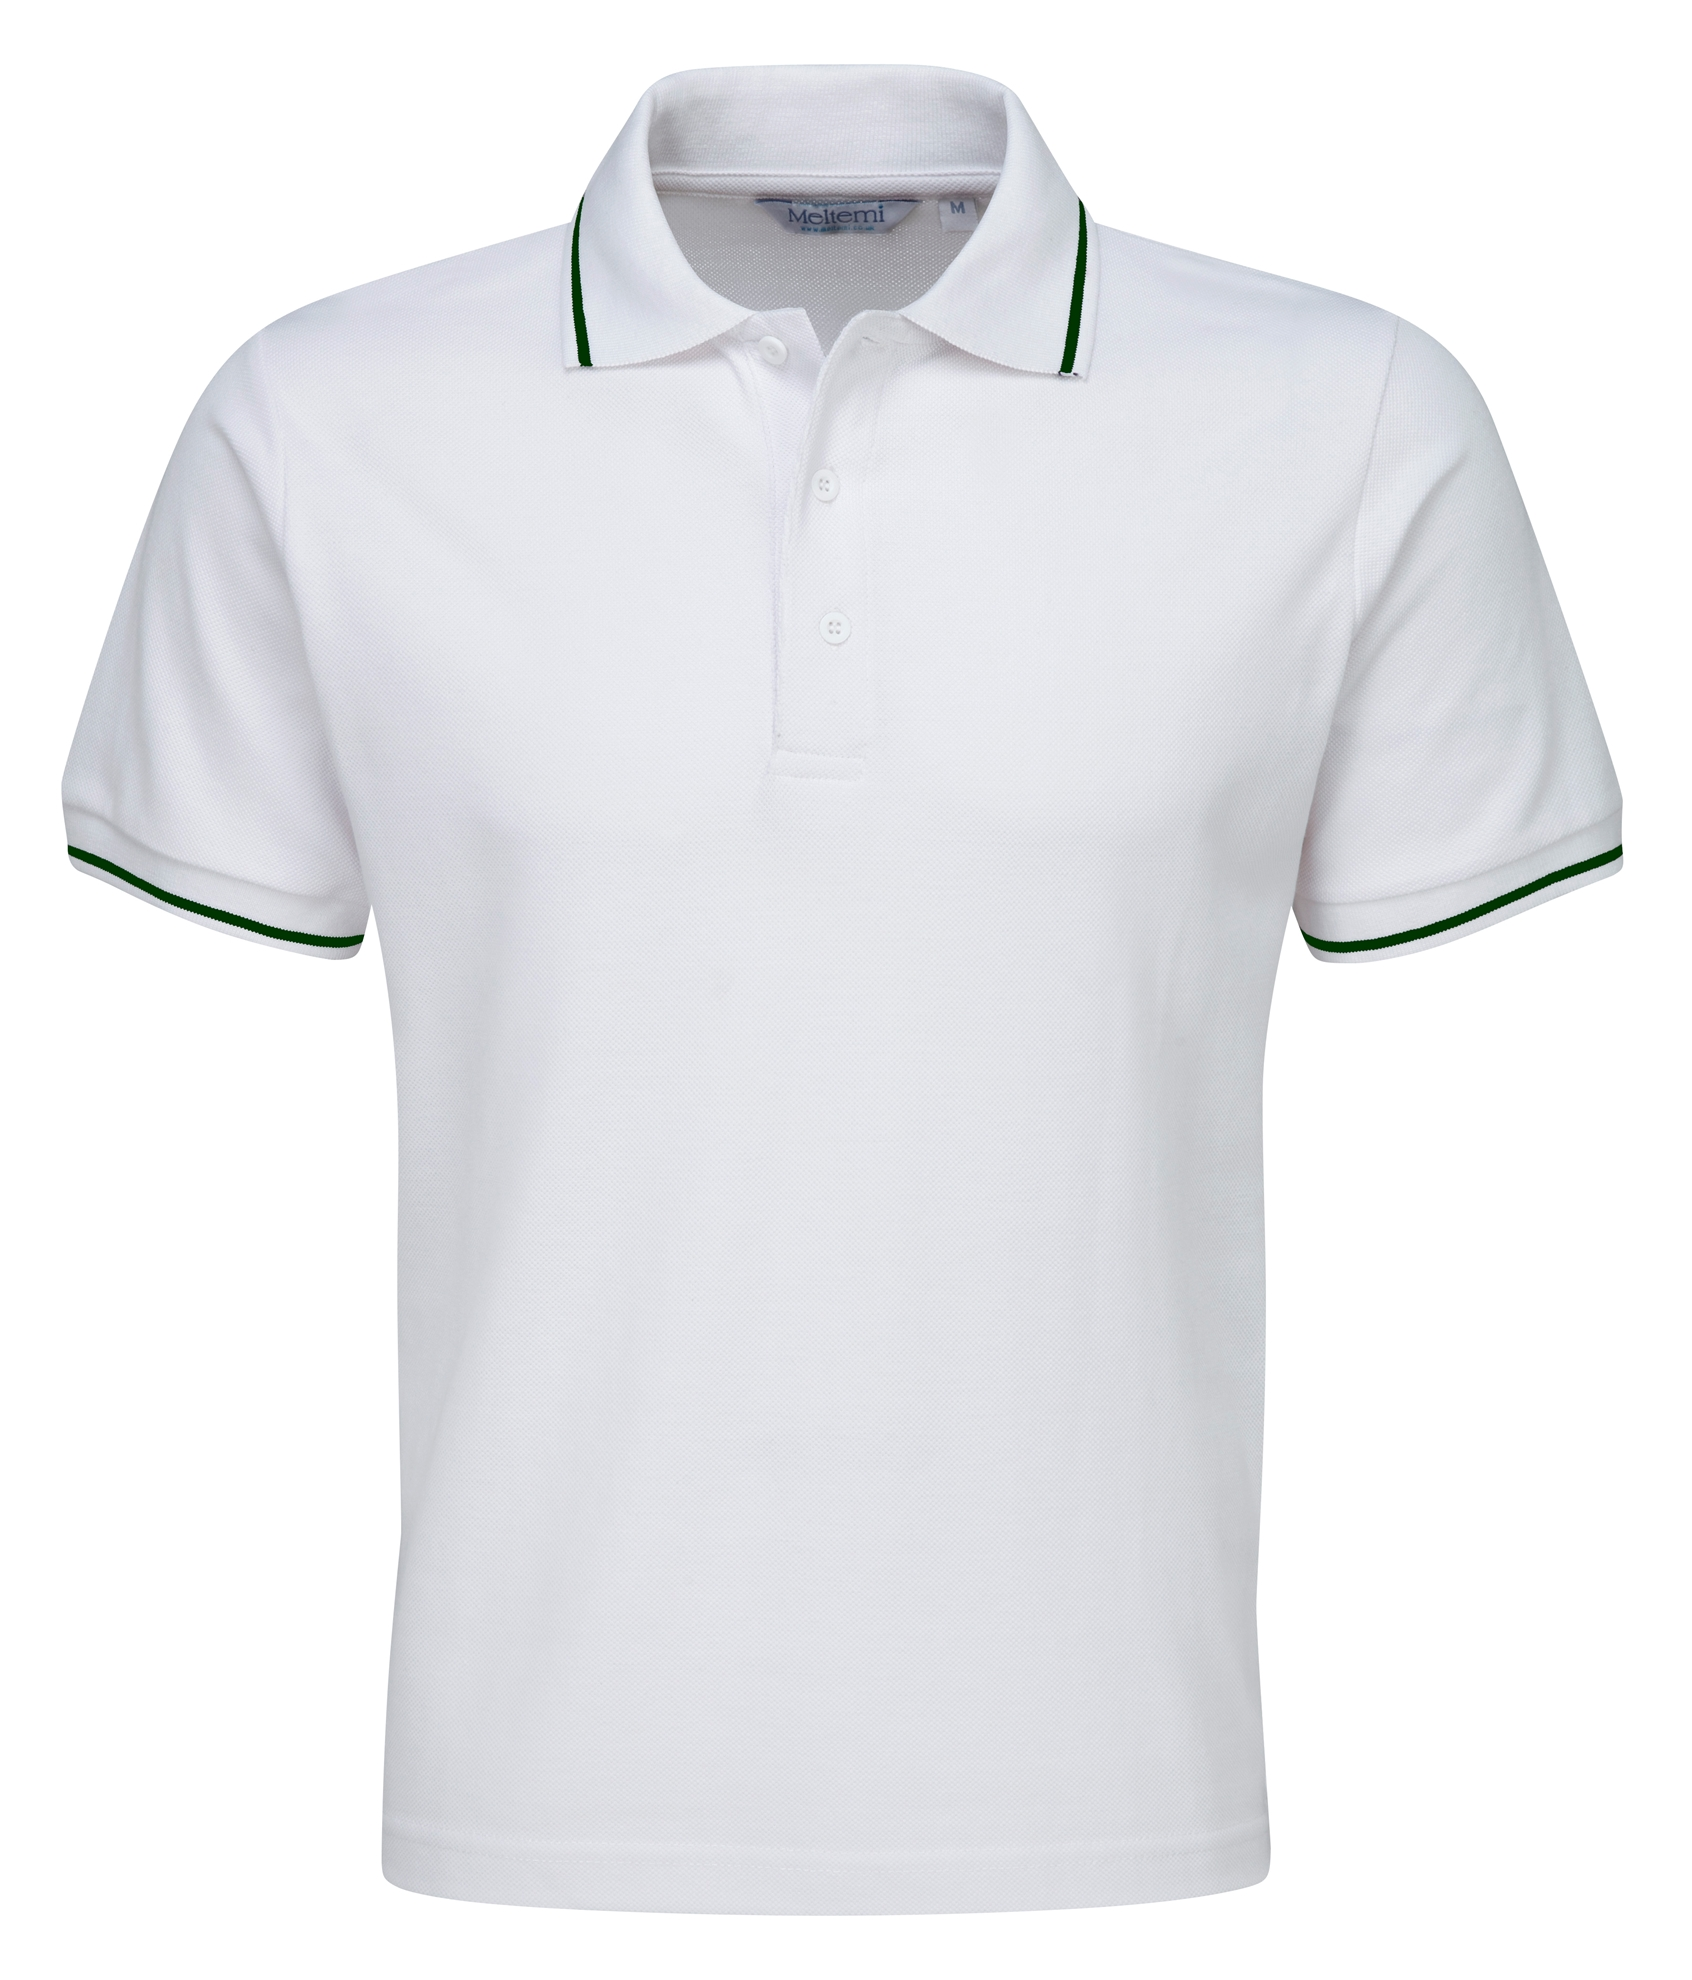 Picture of Single Tipped Polo Shirt - White/Bottle Green